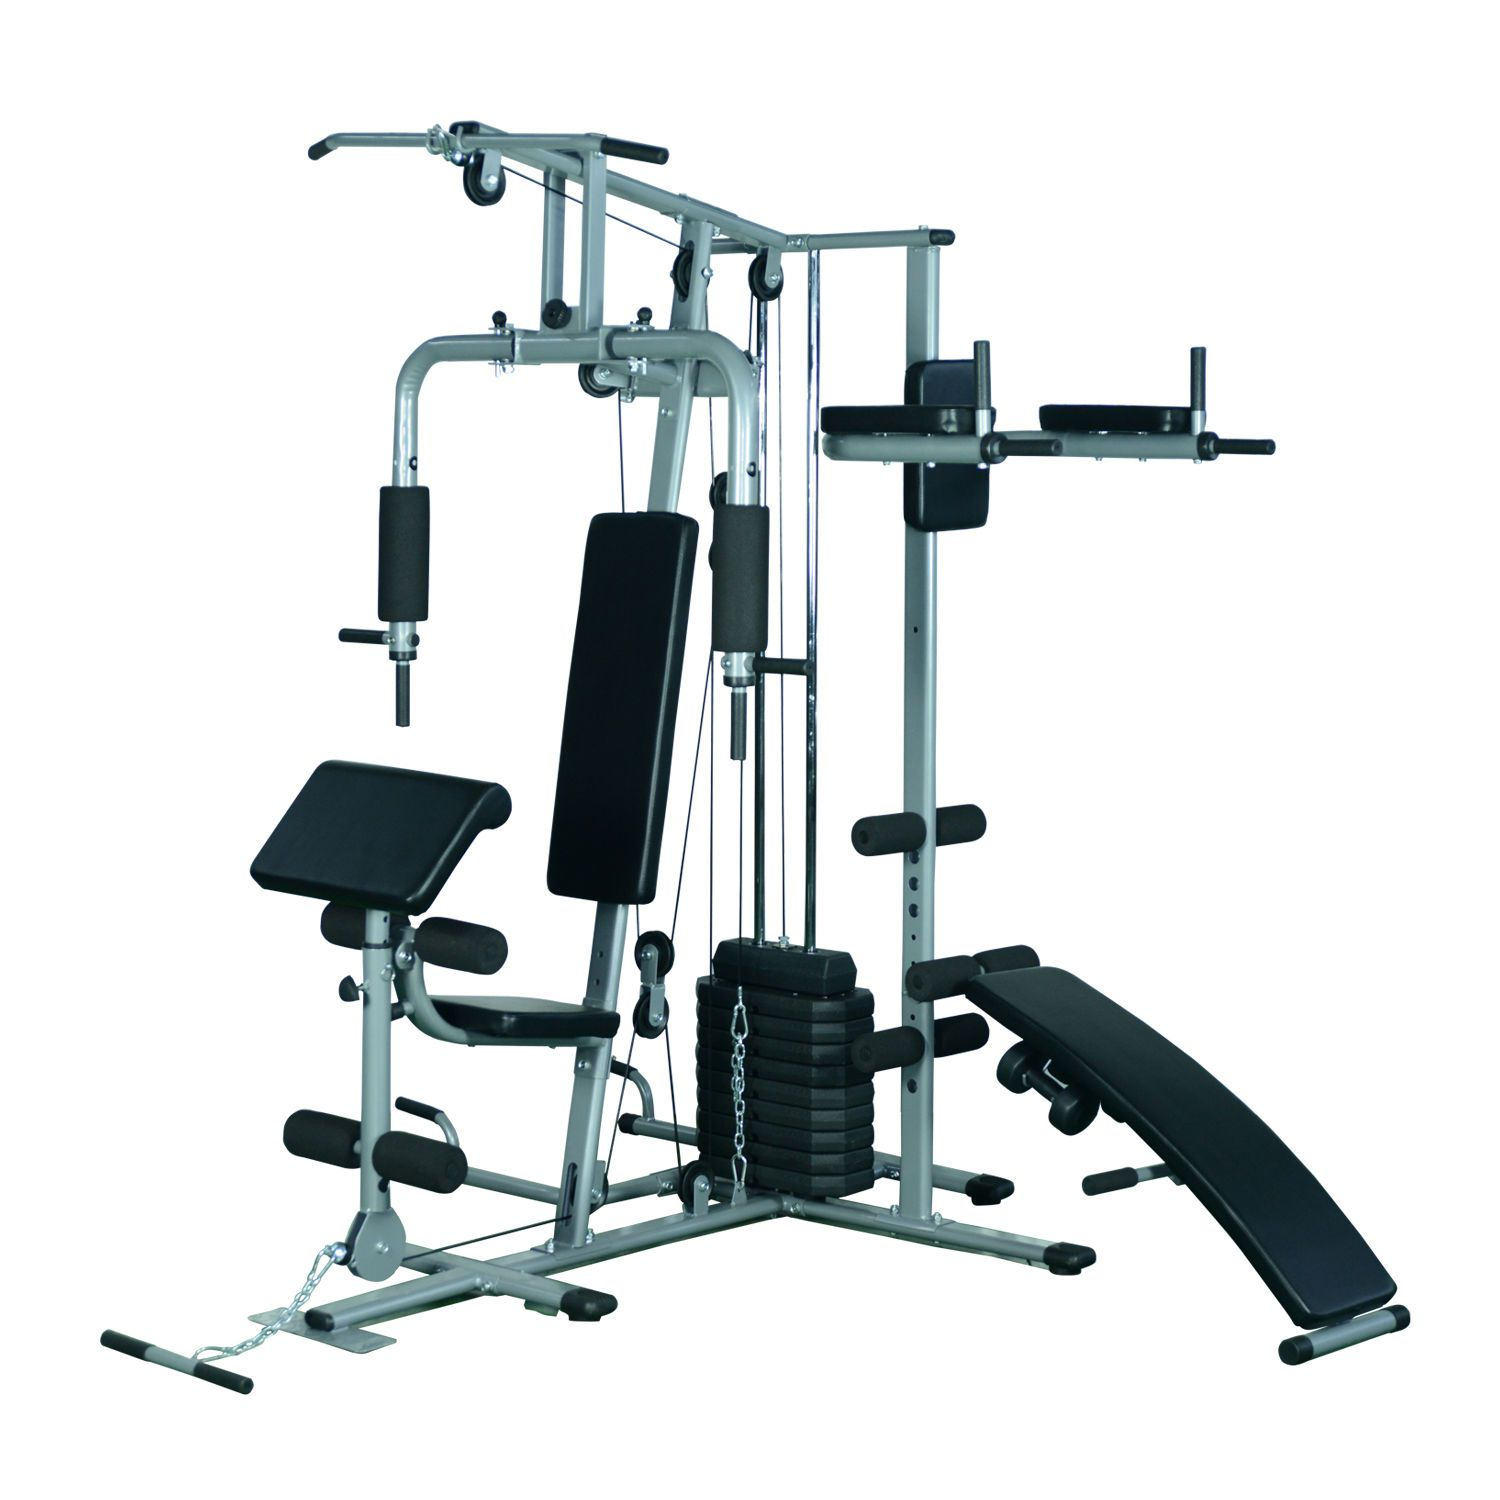 Soozier Deluxe Home Gym Fitness Exercise Machine Weight